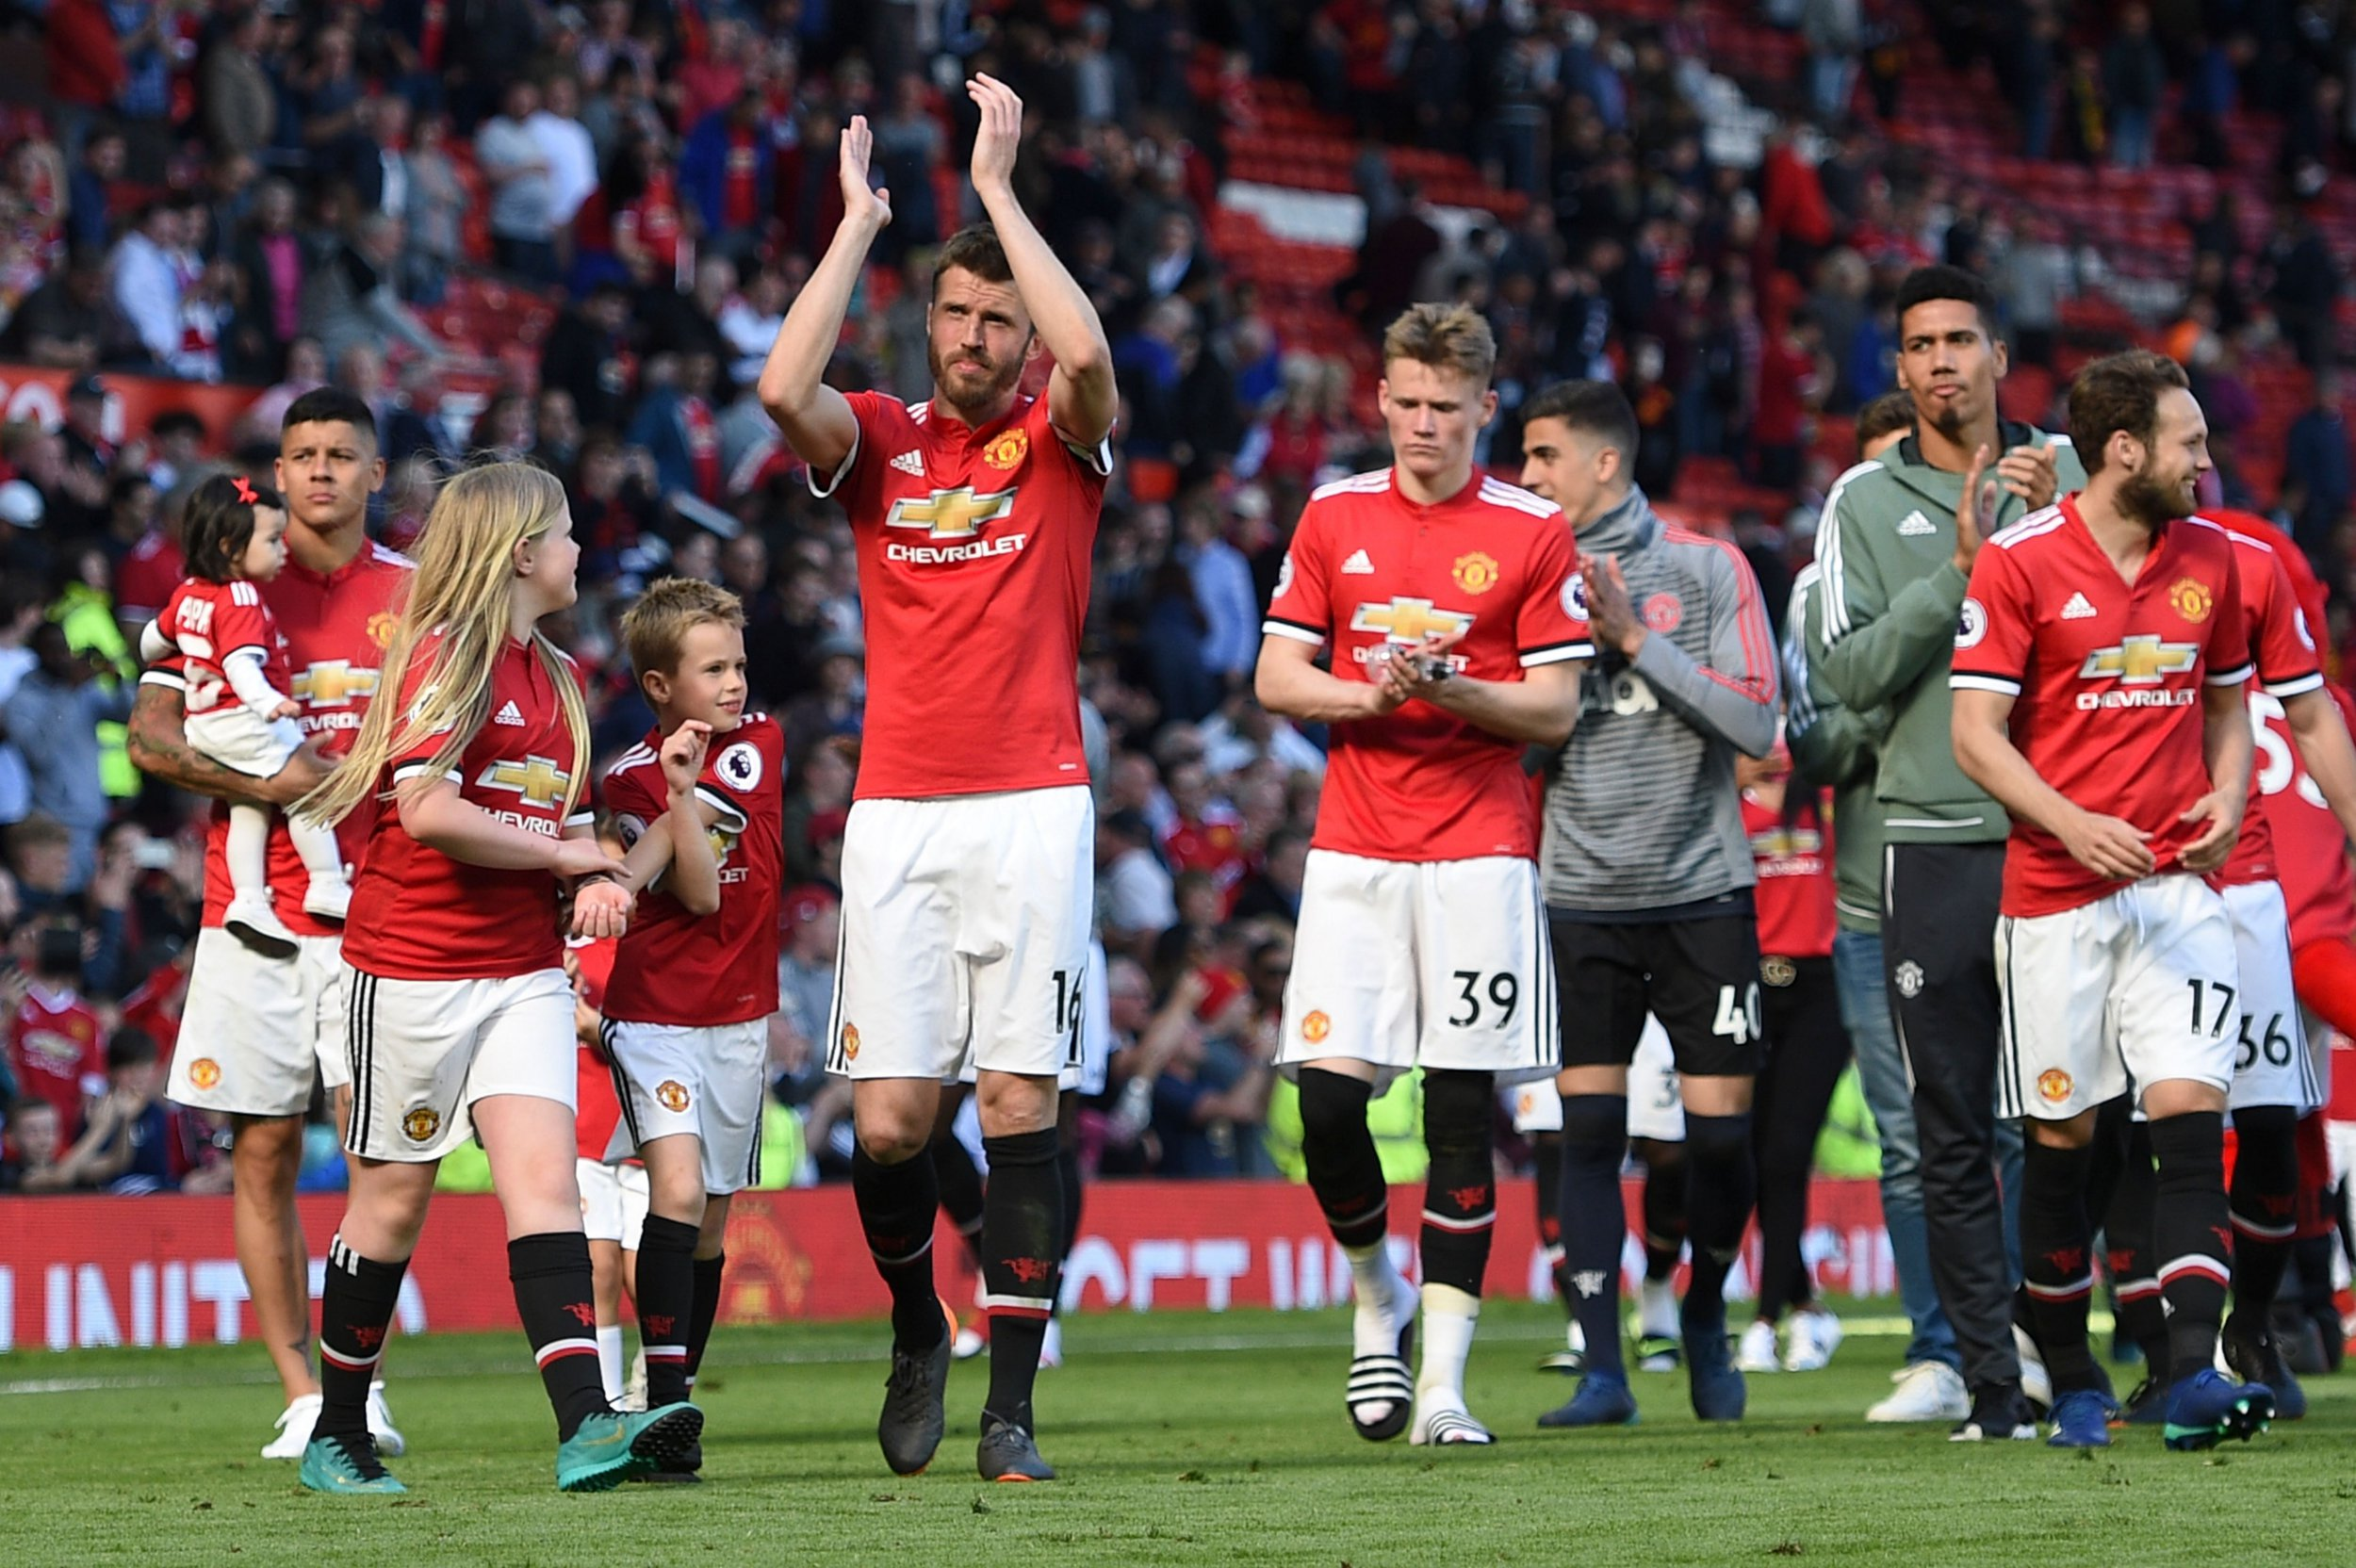 Manchester United's English midfielder Michael Carrick (C) applauds the crowd at the end of the English Premier League football match between Manchester United and Watford at Old Trafford in Manchester, north west England, on May 13, 2018. / AFP PHOTO / Oli SCARFF / RESTRICTED TO EDITORIAL USE. No use with unauthorized audio, video, data, fixture lists, club/league logos or 'live' services. Online in-match use limited to 75 images, no video emulation. No use in betting, games or single club/league/player publications. / OLI SCARFF/AFP/Getty Images